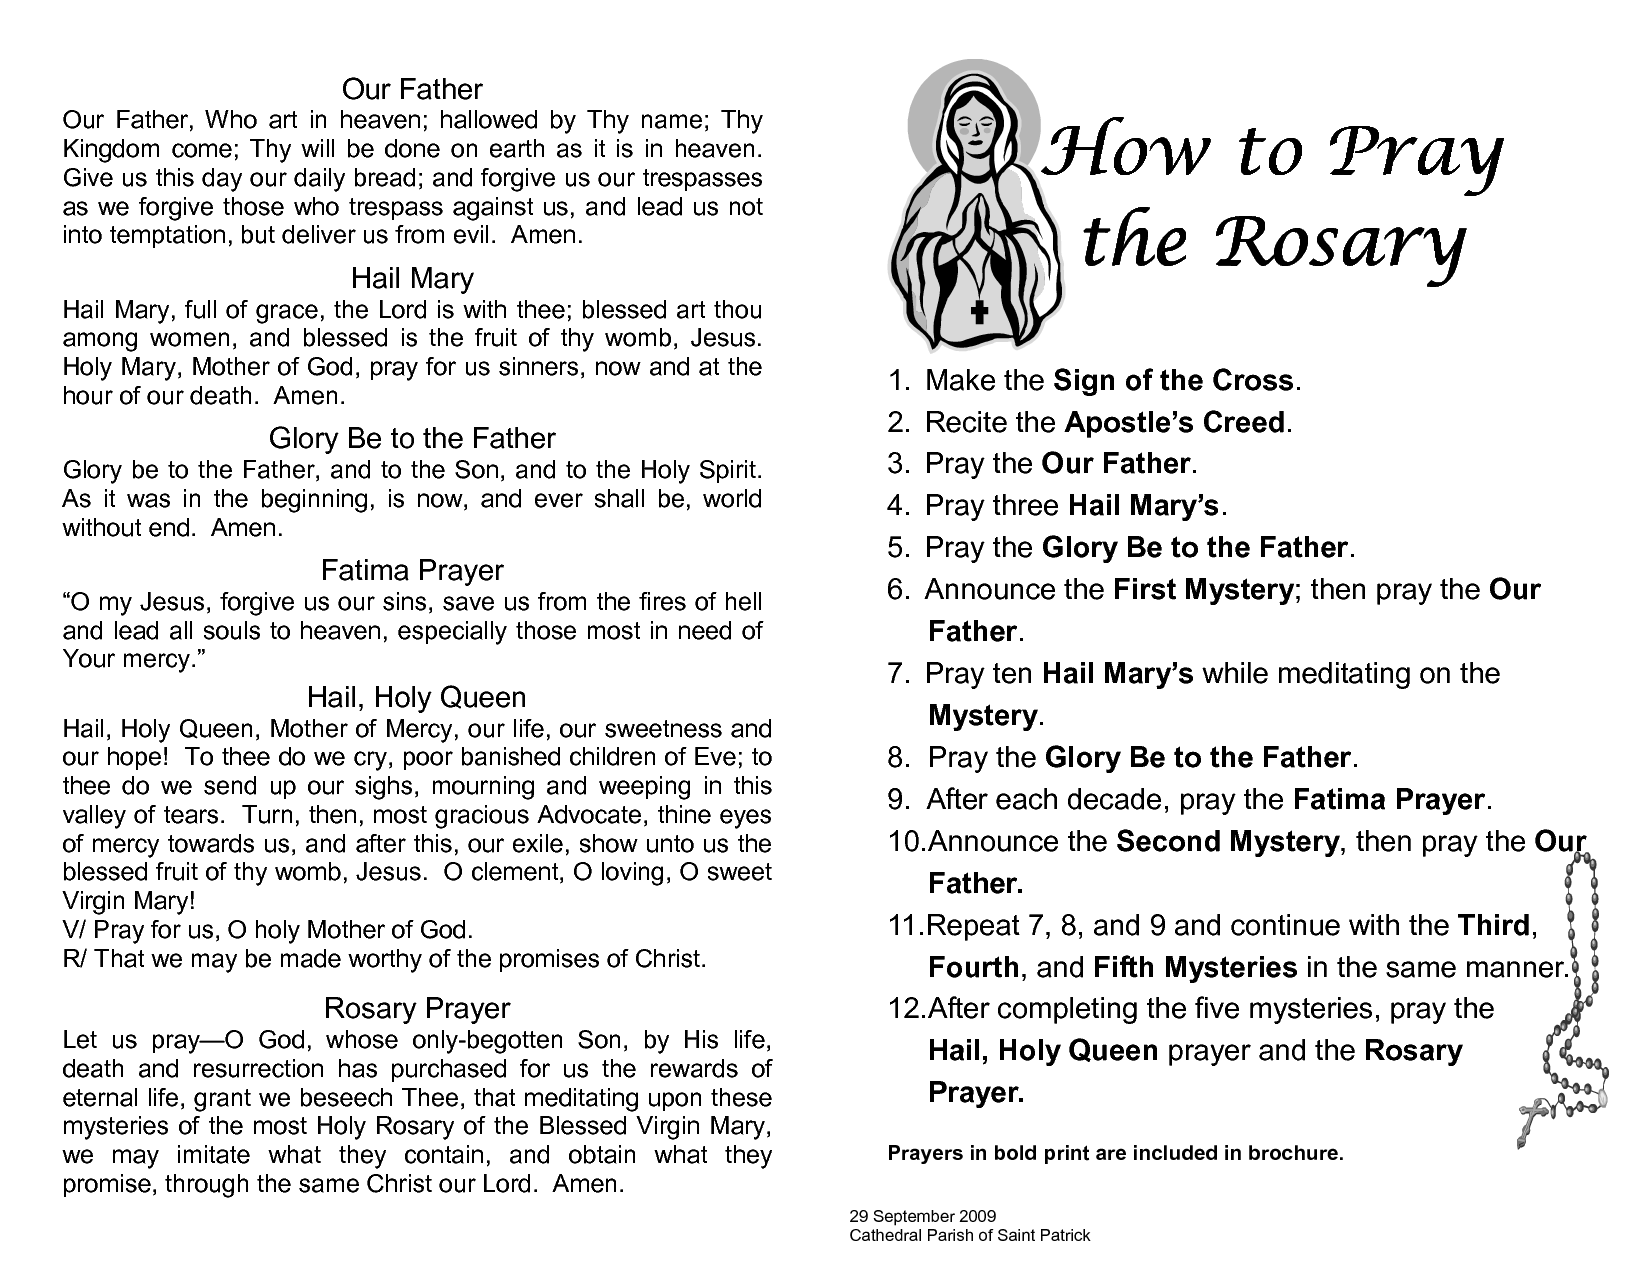 Printable Rosary Prayer Guide